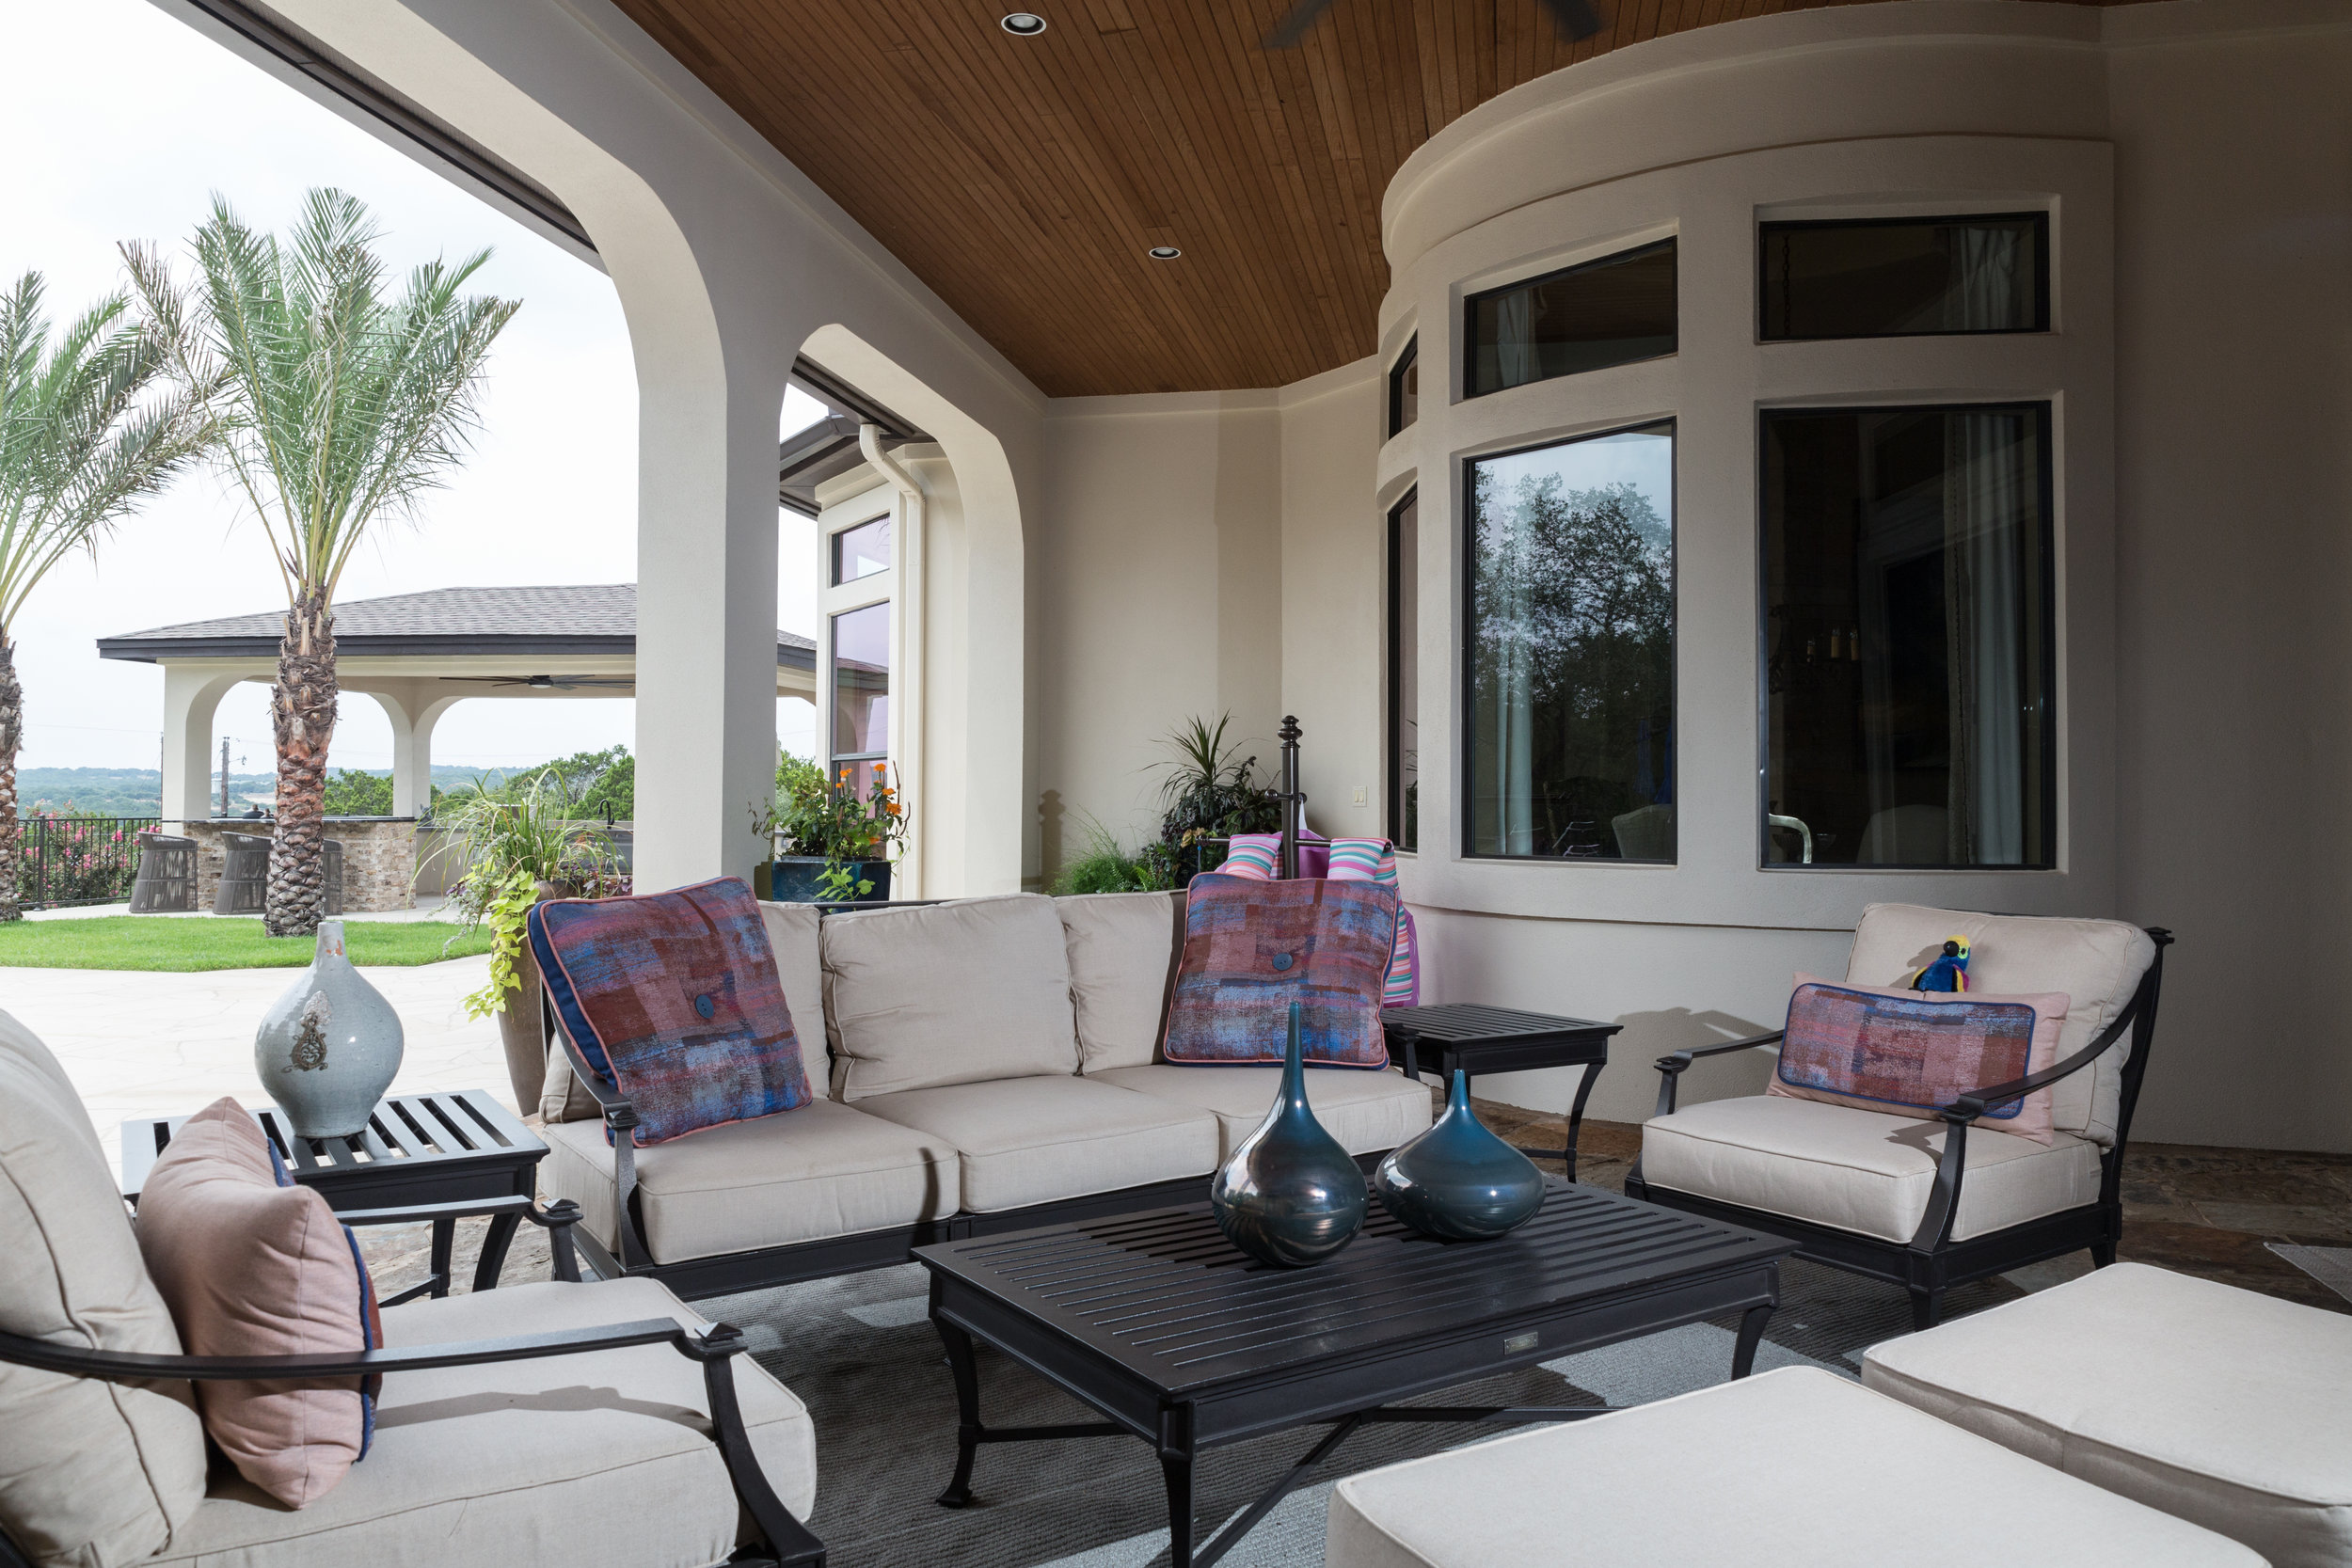 Covered Patio Seating Area